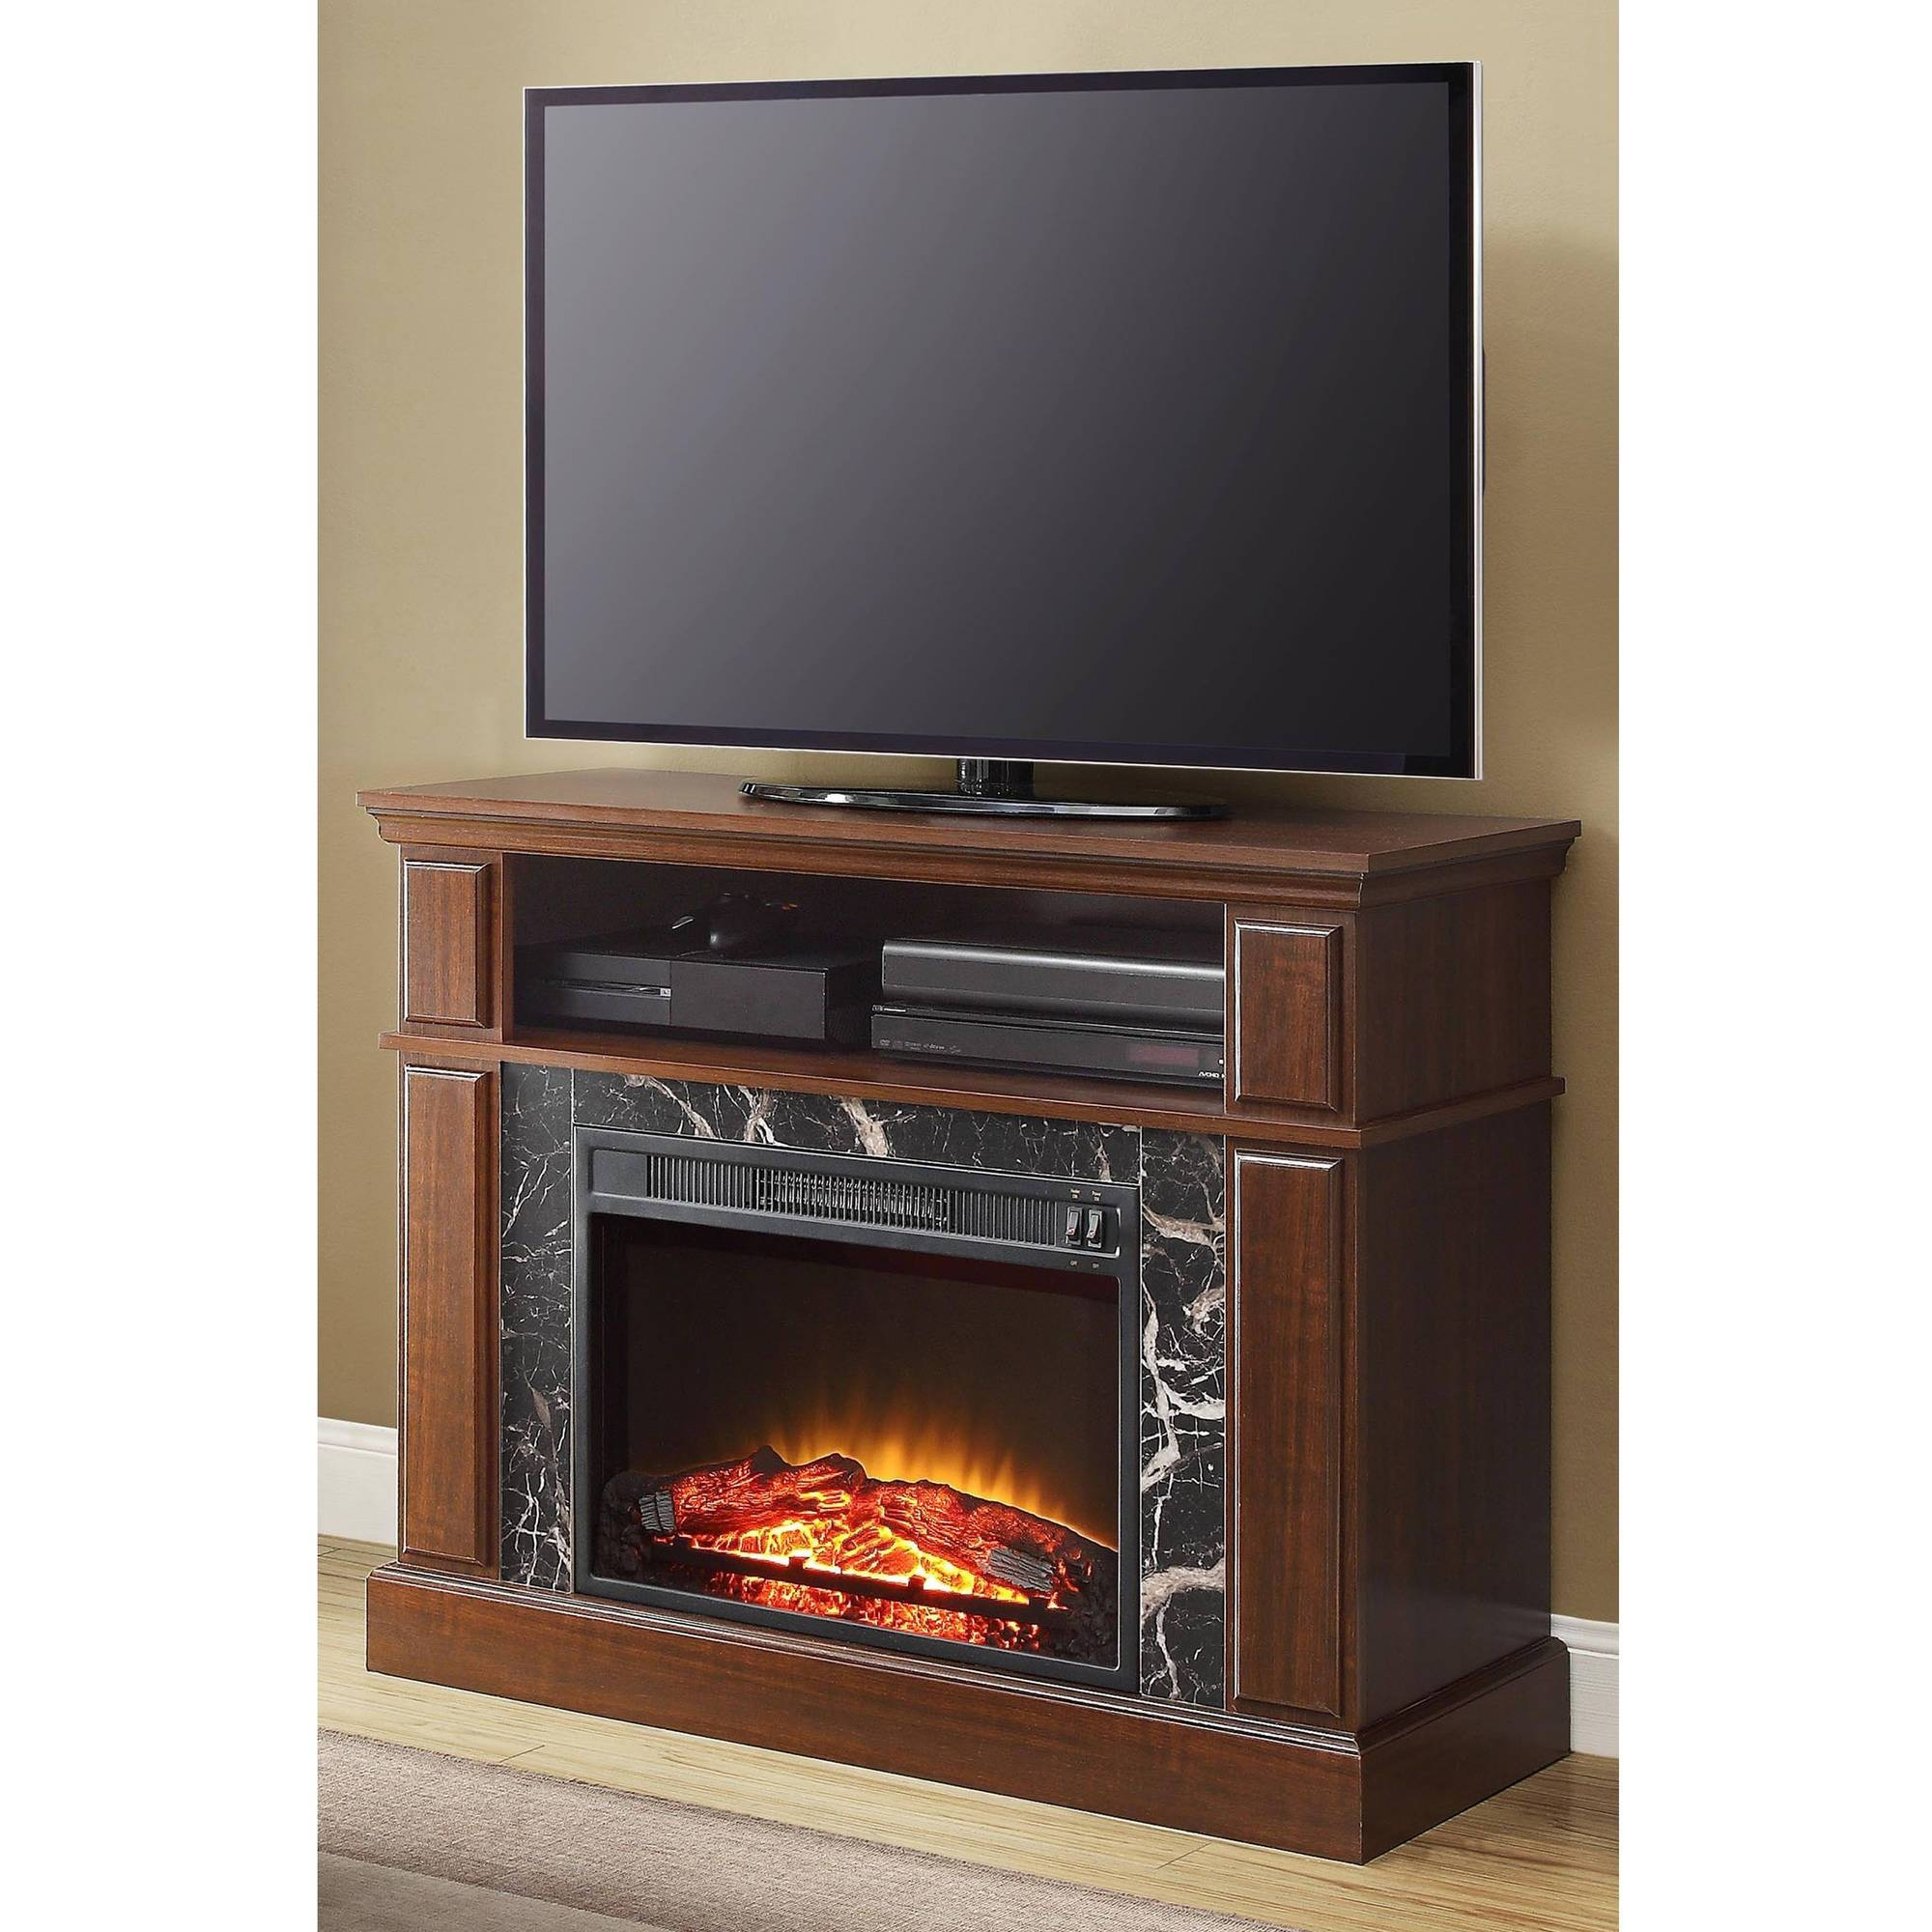 Tv Stands & Entertainment Centers – Walmart Pertaining To Tv Stands With Storage Baskets (View 9 of 15)